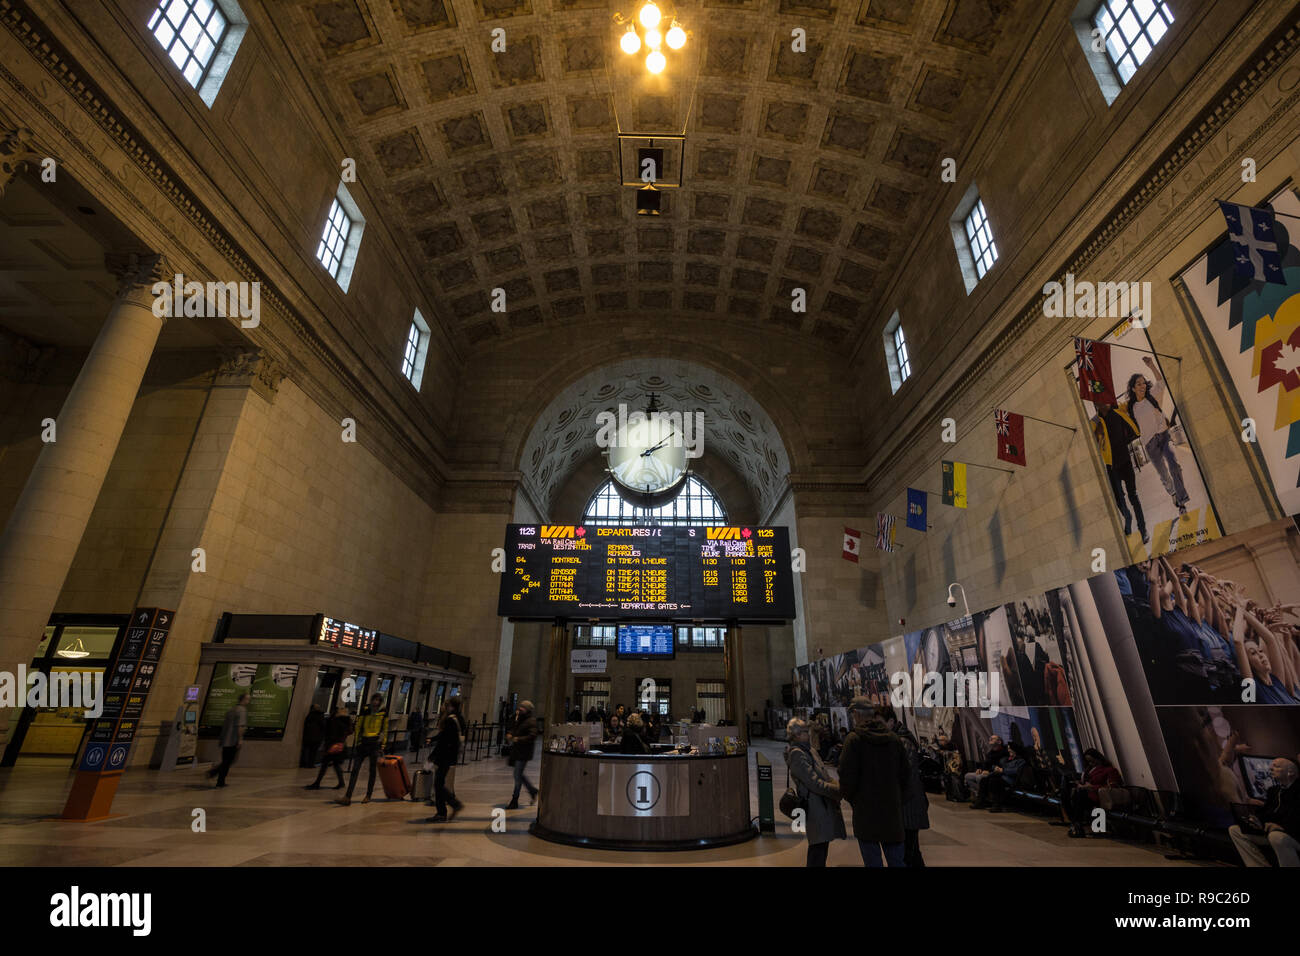 TORONTO, CANADA - NOVEMBER 13, 2018: Toronto main hall with its departures and arrivals board & passengers rushing. It is the main railway station for - Stock Image